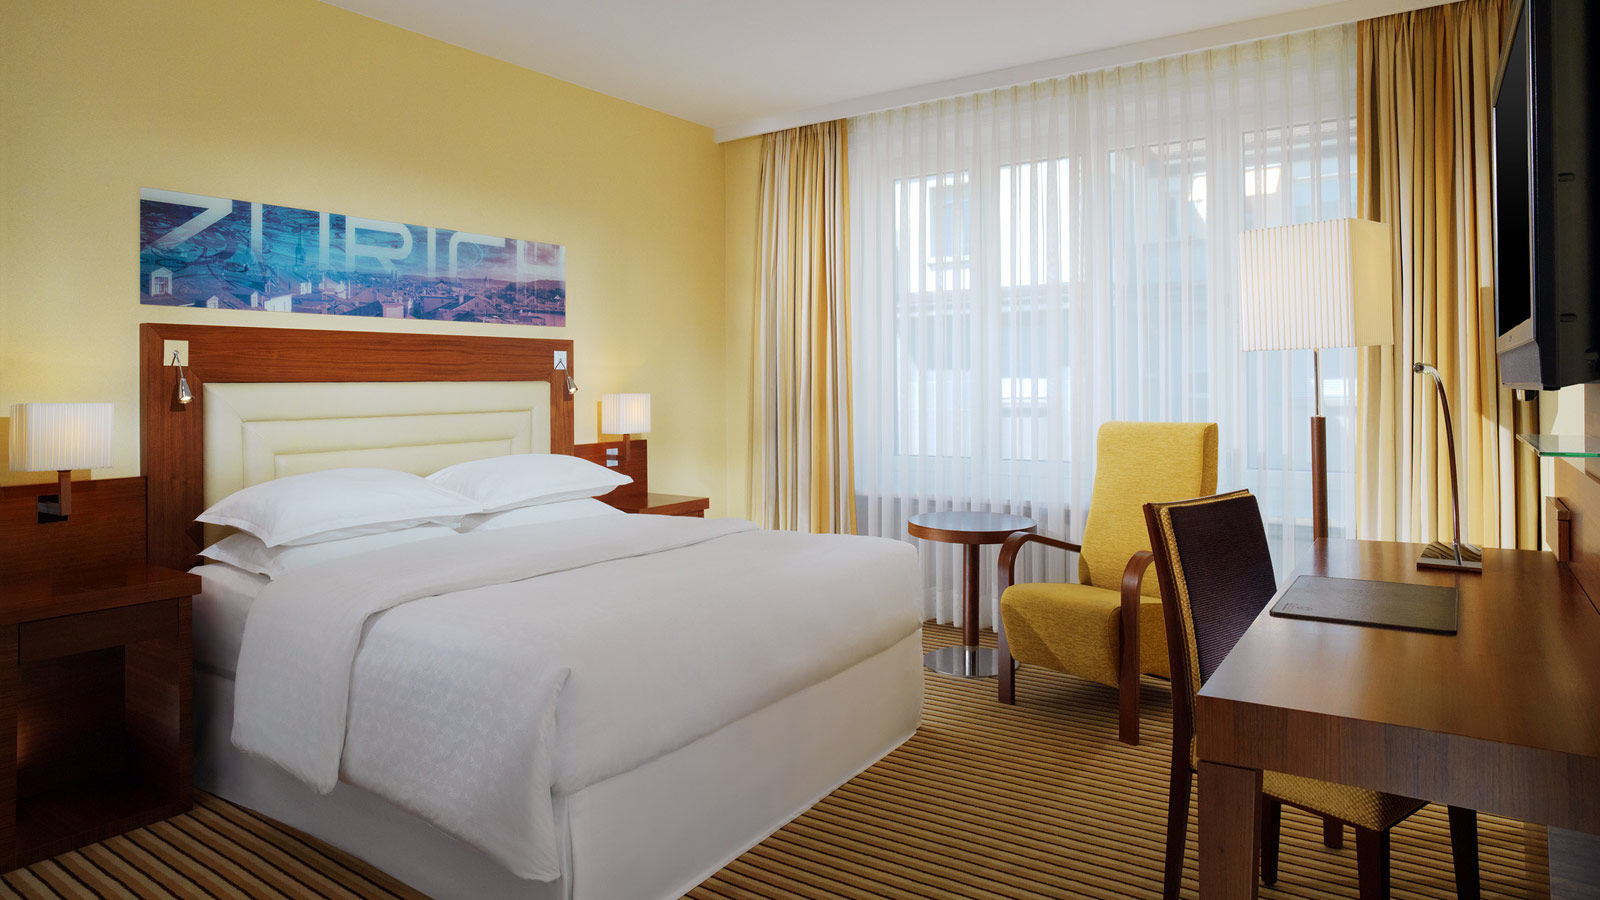 Sheraton-Zrich-Neues-Schloss-Hotel-Executive-Room